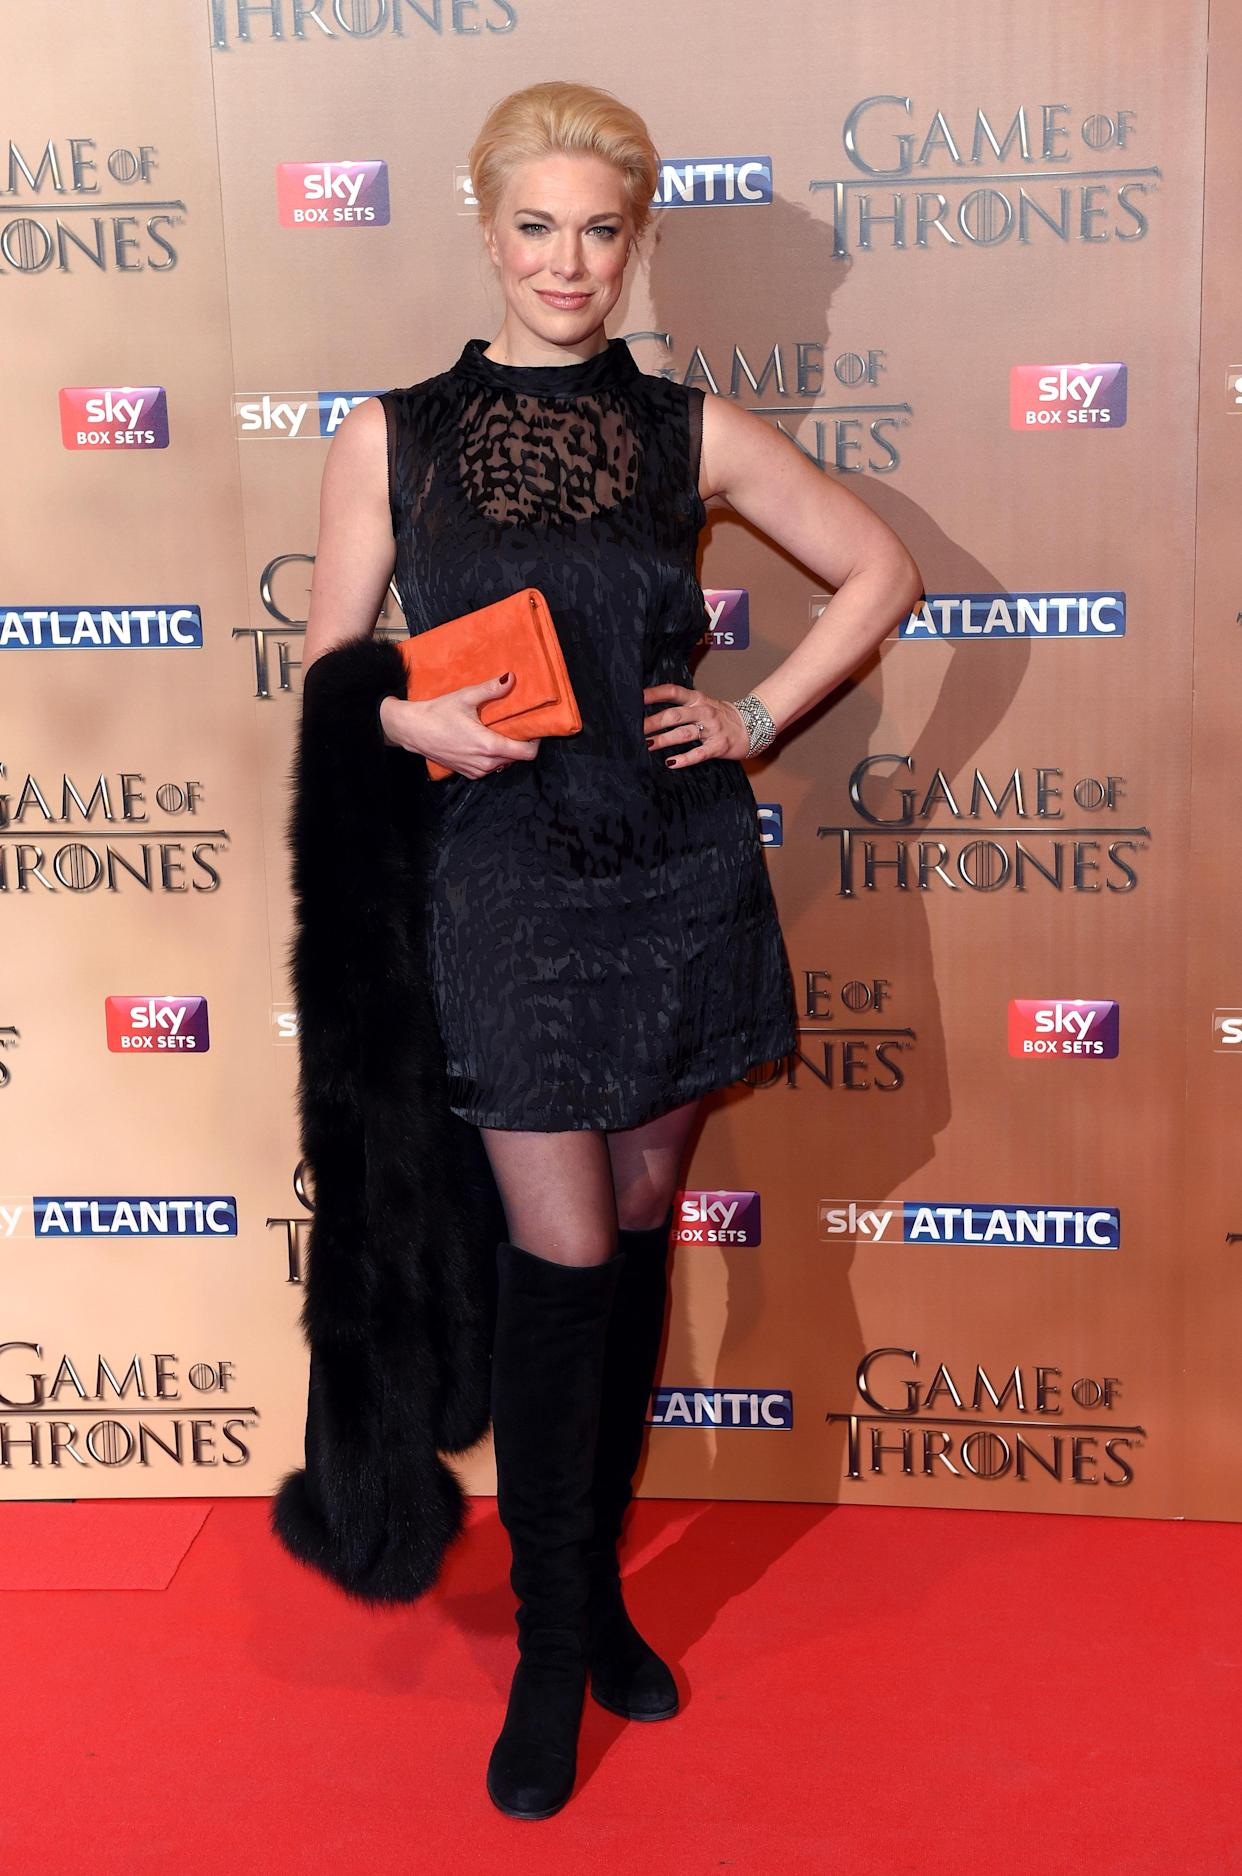 LONDON, ENGLAND - MARCH 18:  Hannah Waddingham arrives for the world premiere of Game of Thrones Season 5 at Tower of London on March 18, 2015 in London, England.  (Photo by Karwai Tang/WireImage)